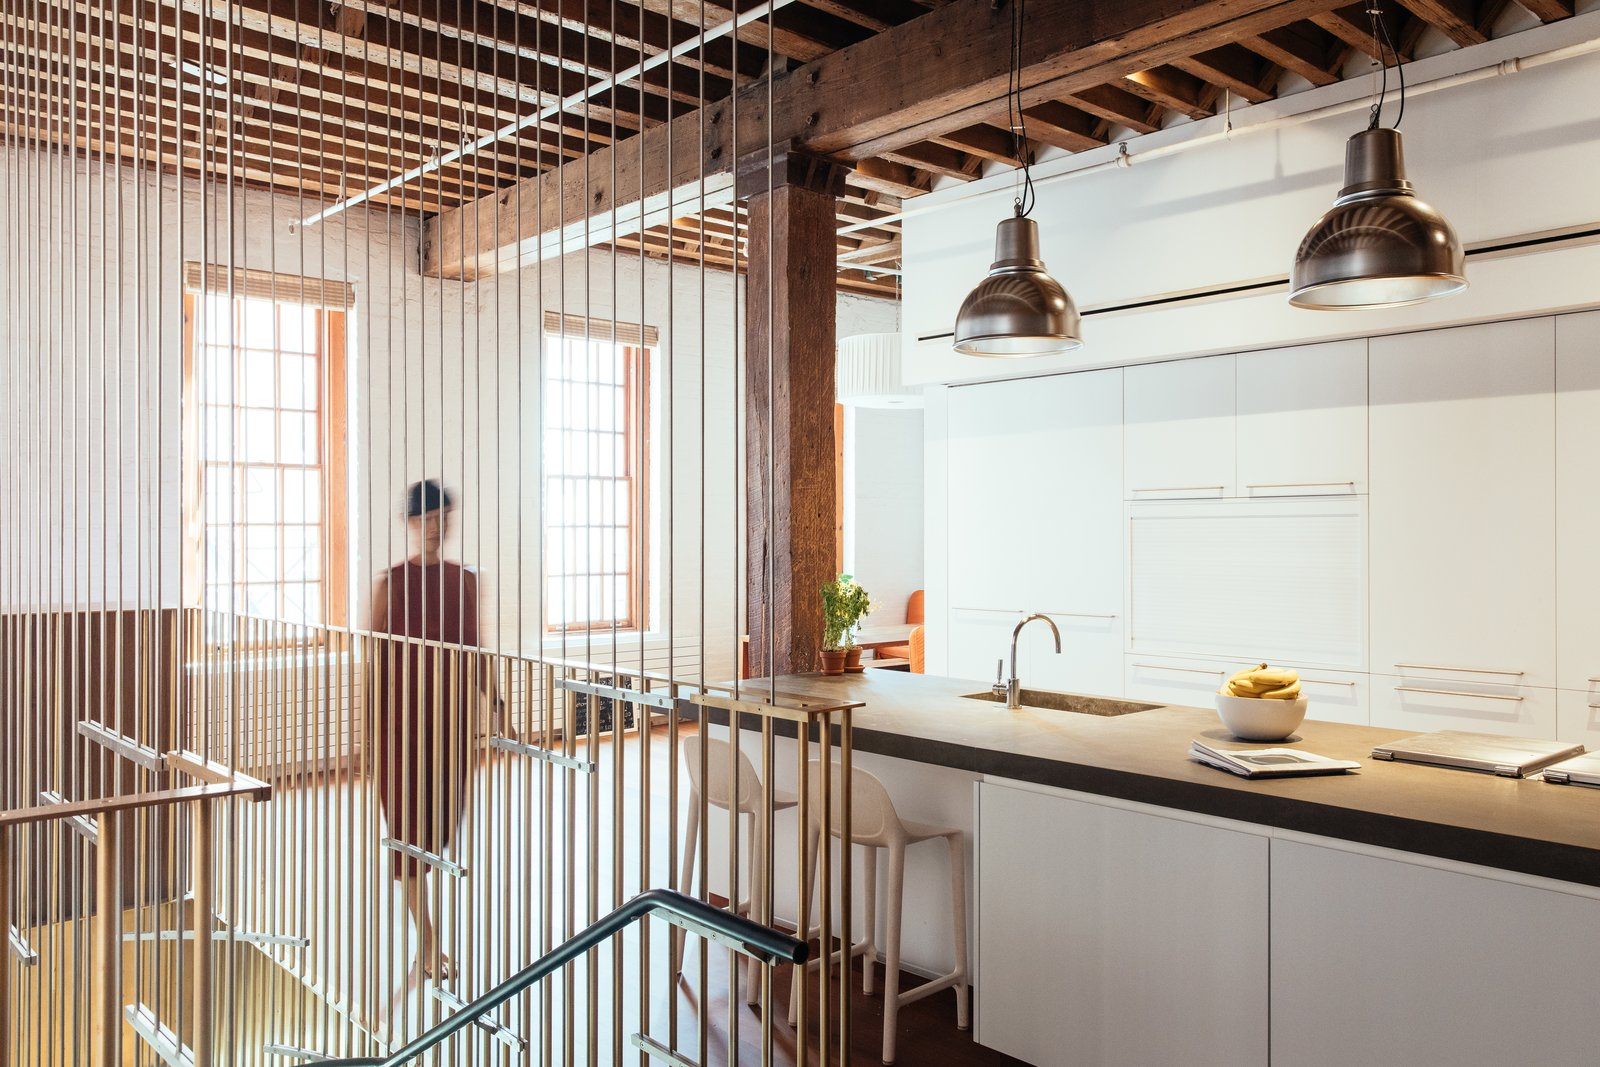 Photo 11 of 13 in A Steel Staircase Merges Two Units Into One in ...